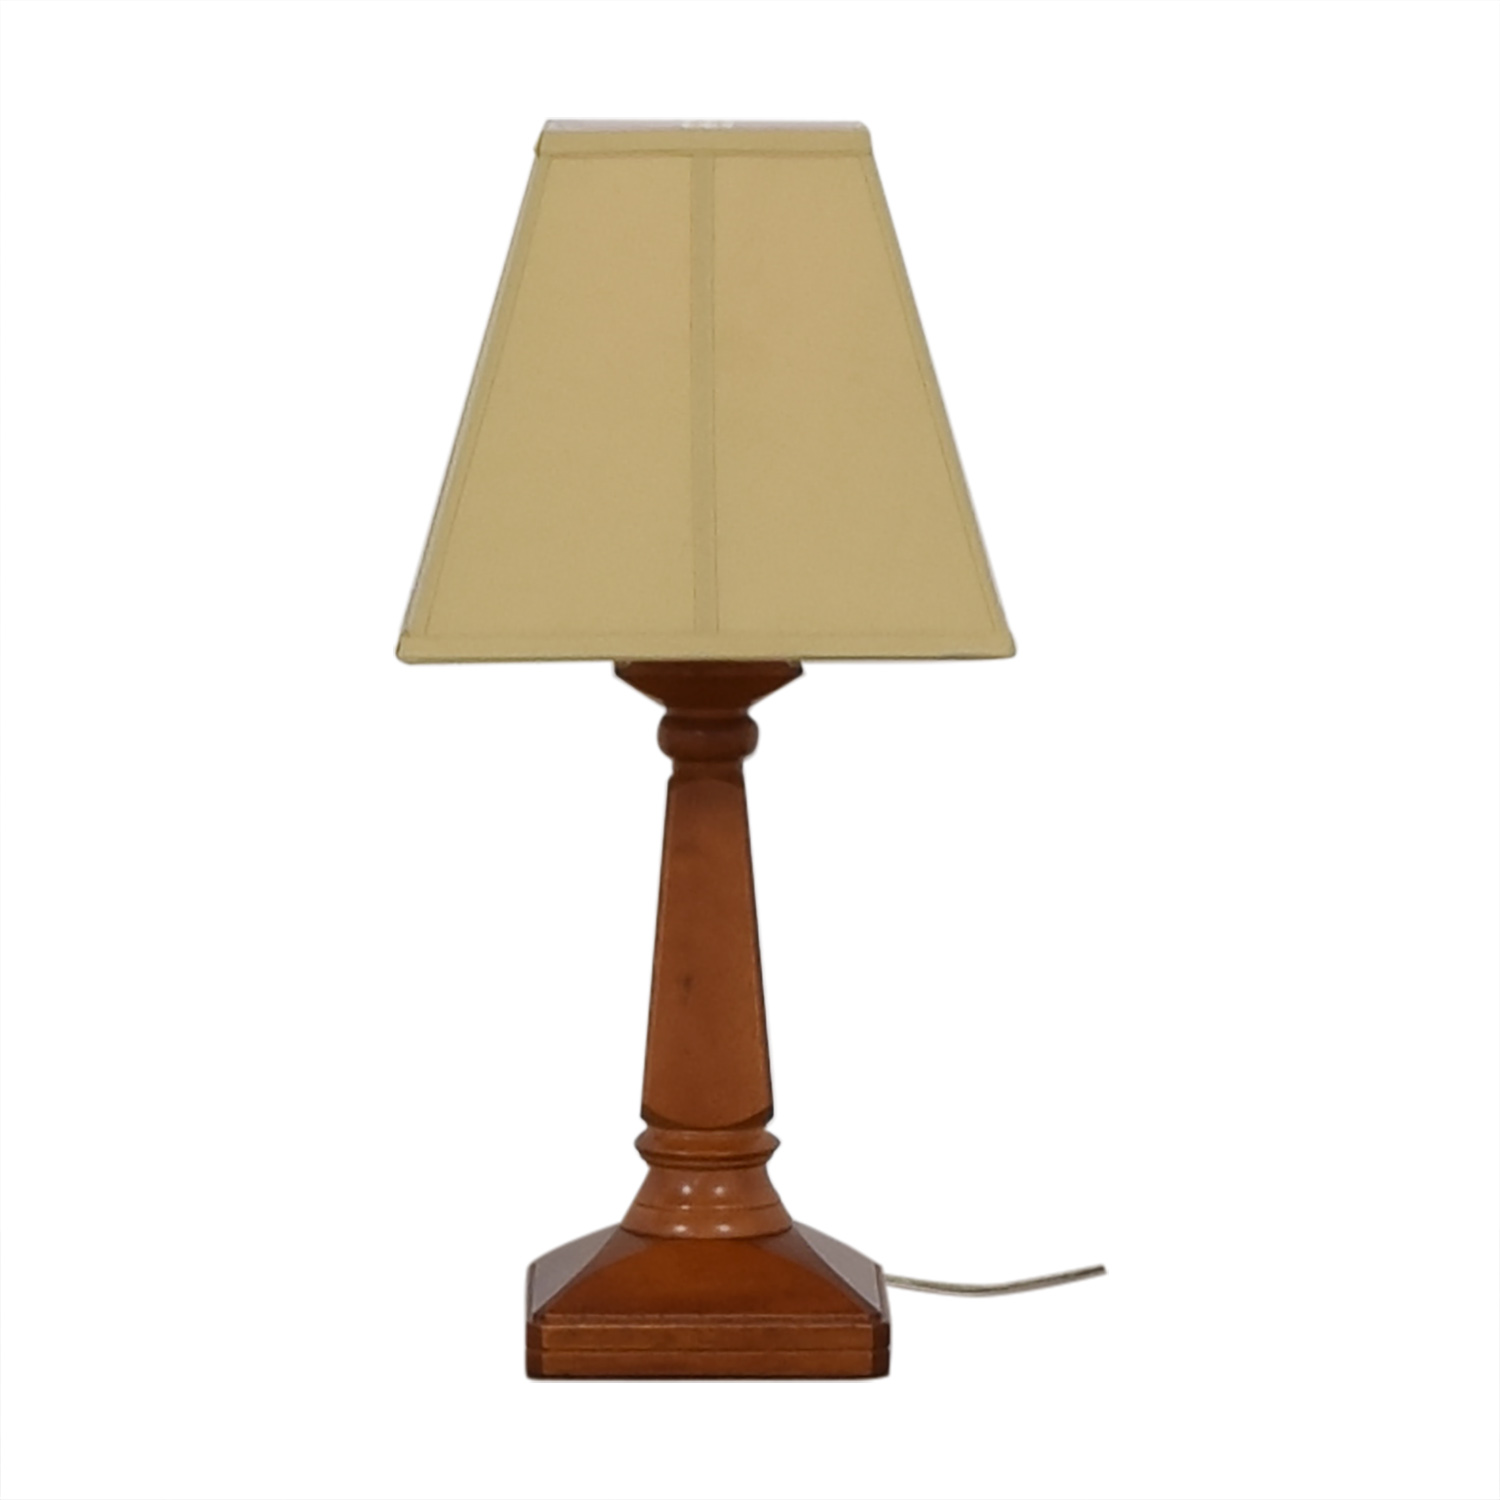 Pottery Barn Pottery Barn Lamp